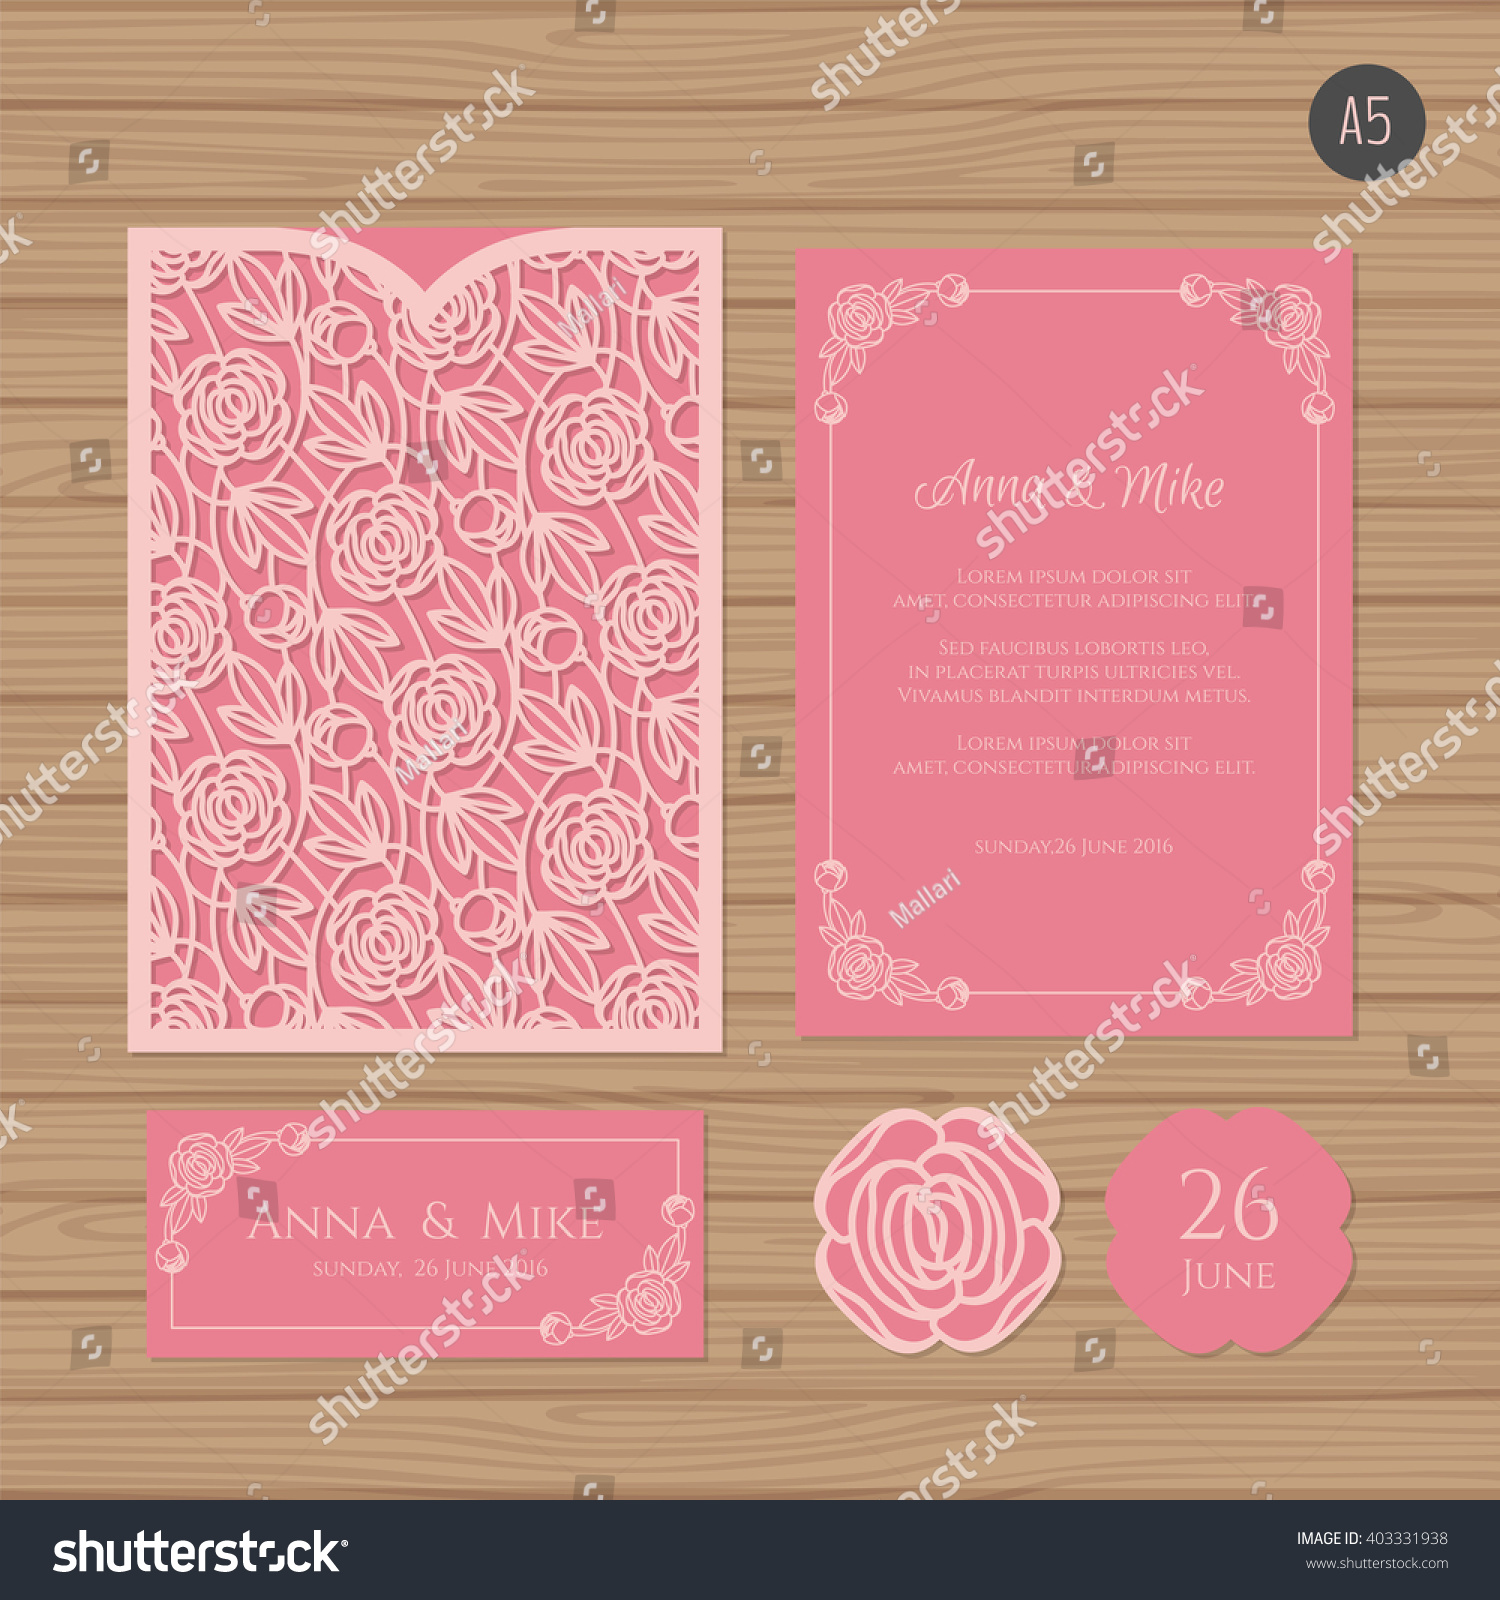 Wedding invitation or greeting card with floral ornament Paper lace envelope template Wedding invitation envelope mock-up for laser cutting Vector illustration